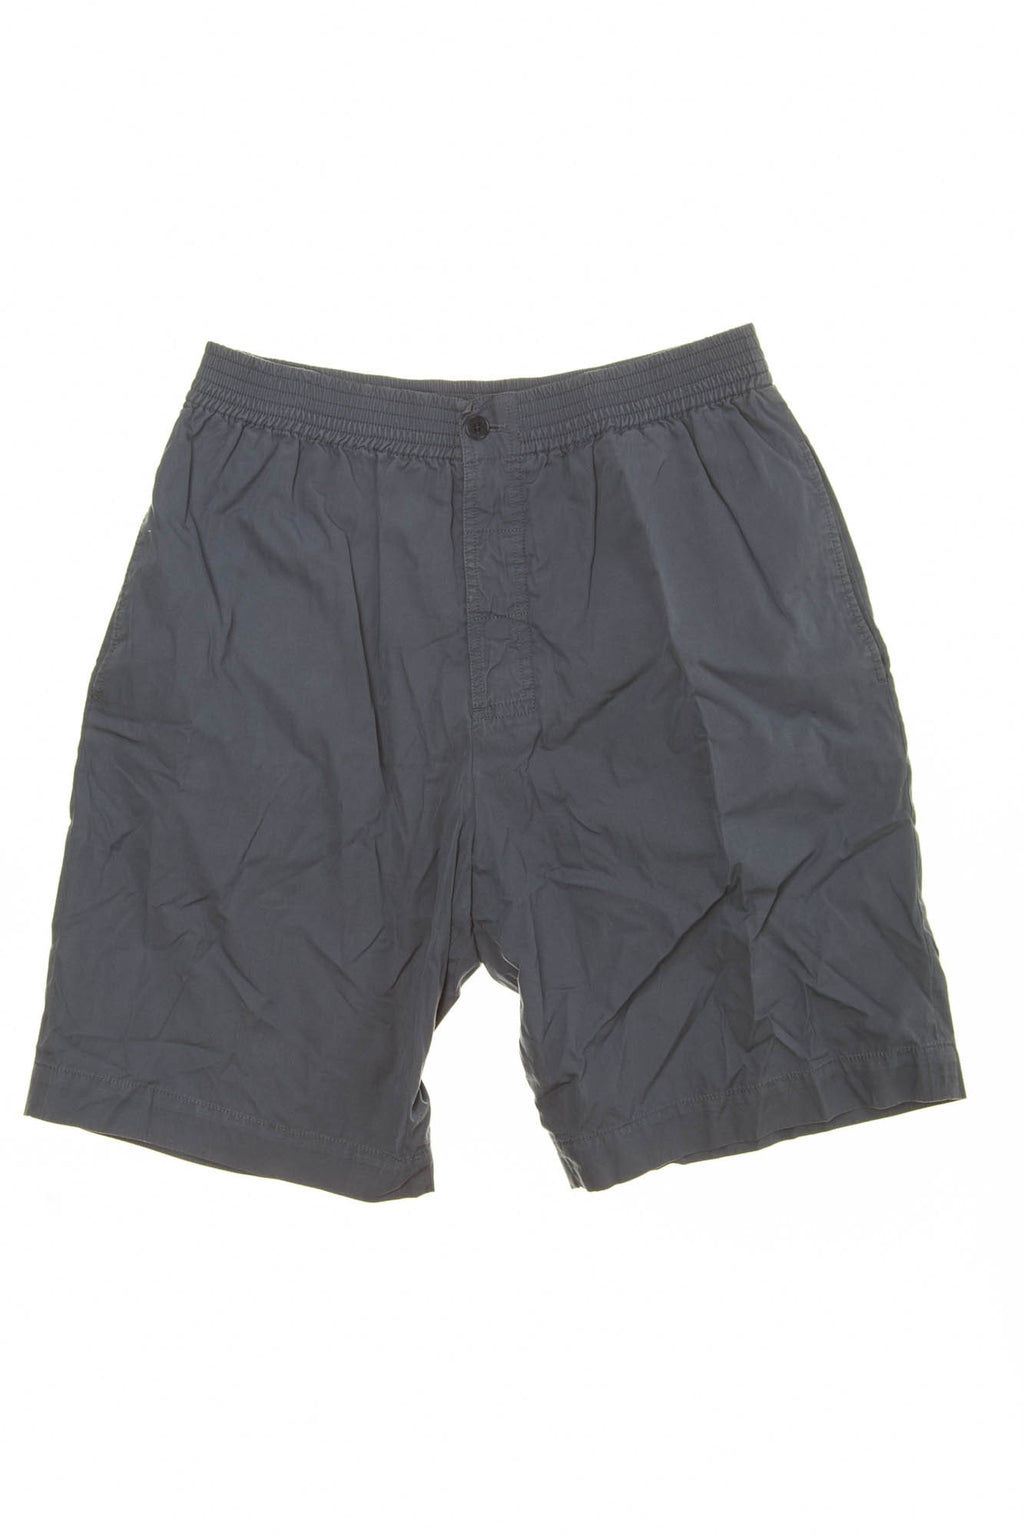 Hermes - Blue Shorts